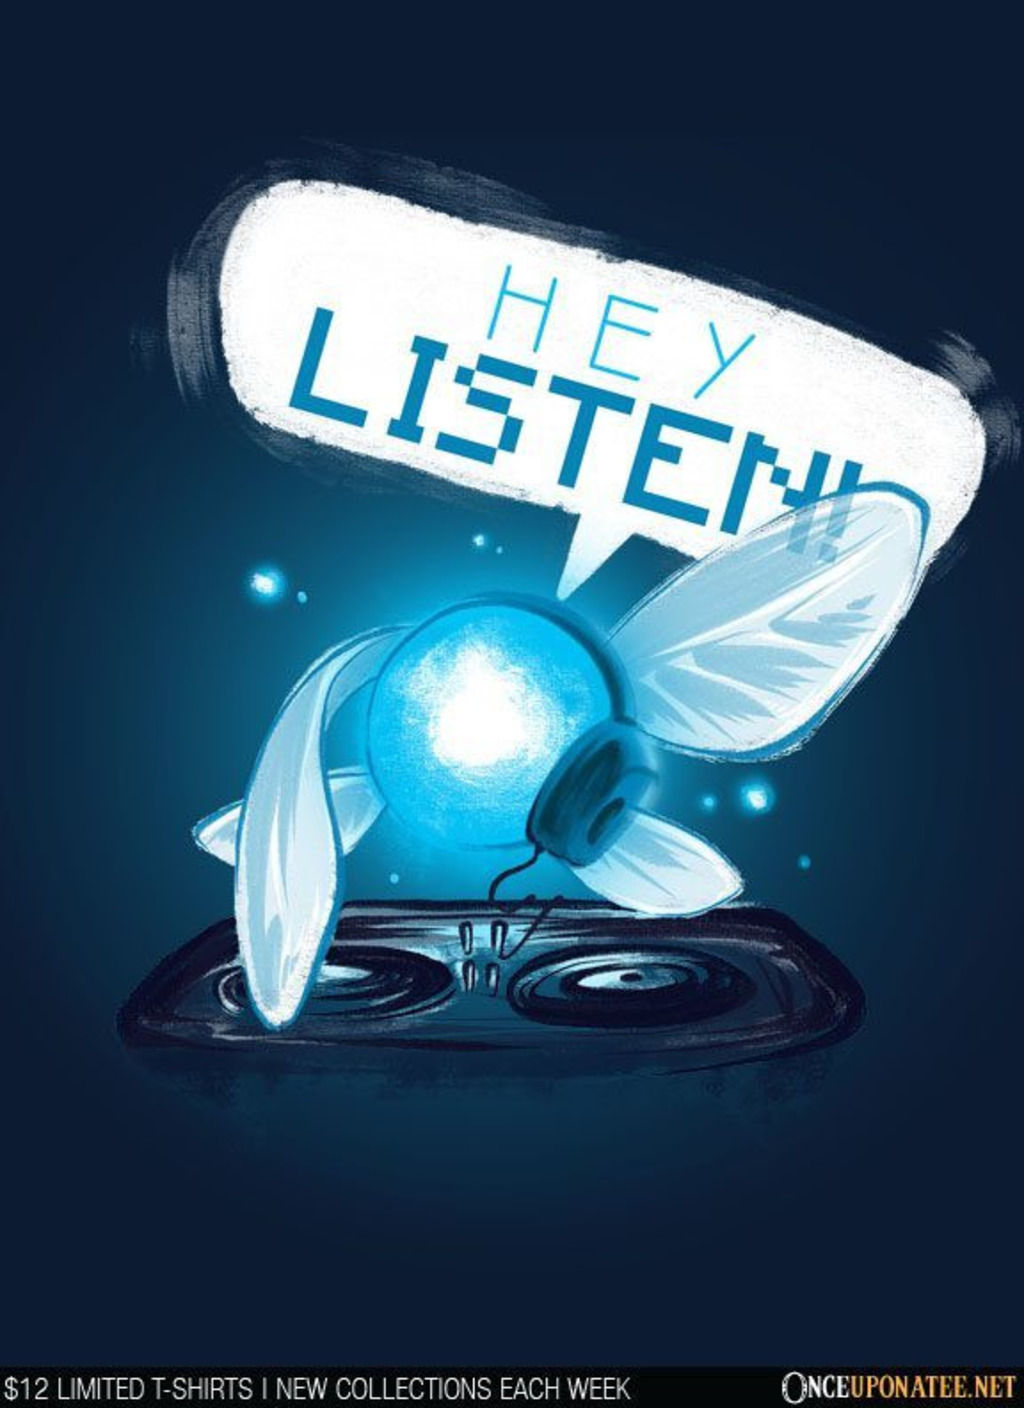 Once Upon a Tee: Hey Listen